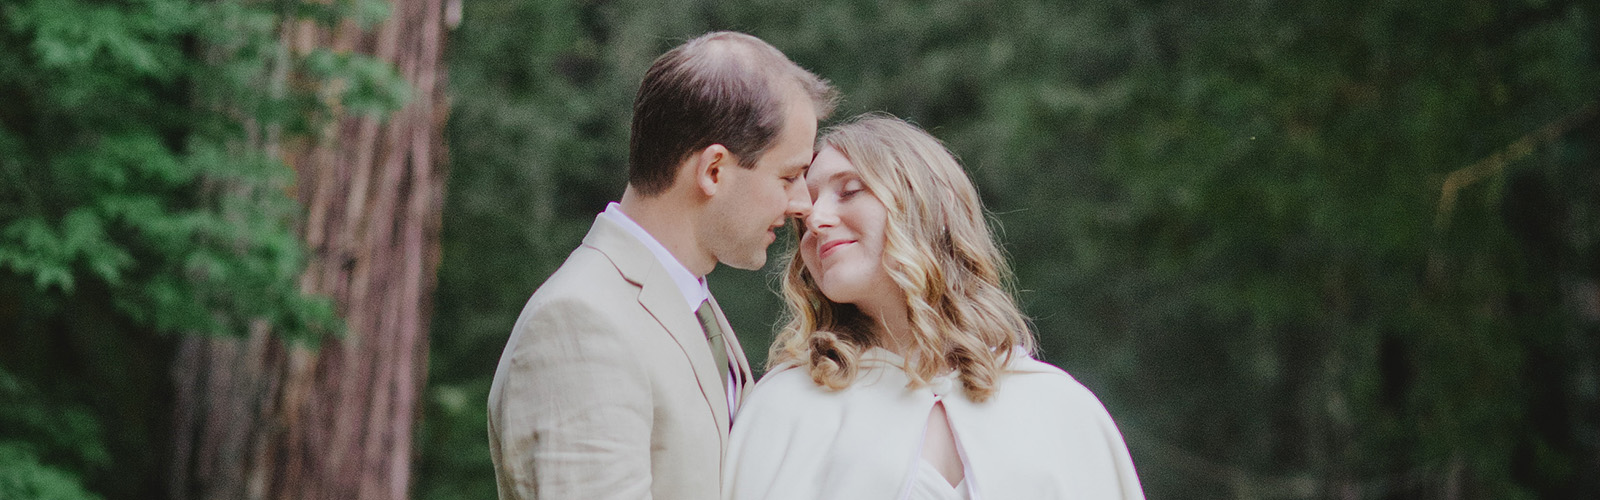 Portland Wedding Photographer Reviews -- Jessica and Evan's Camp Royaneh Wedding